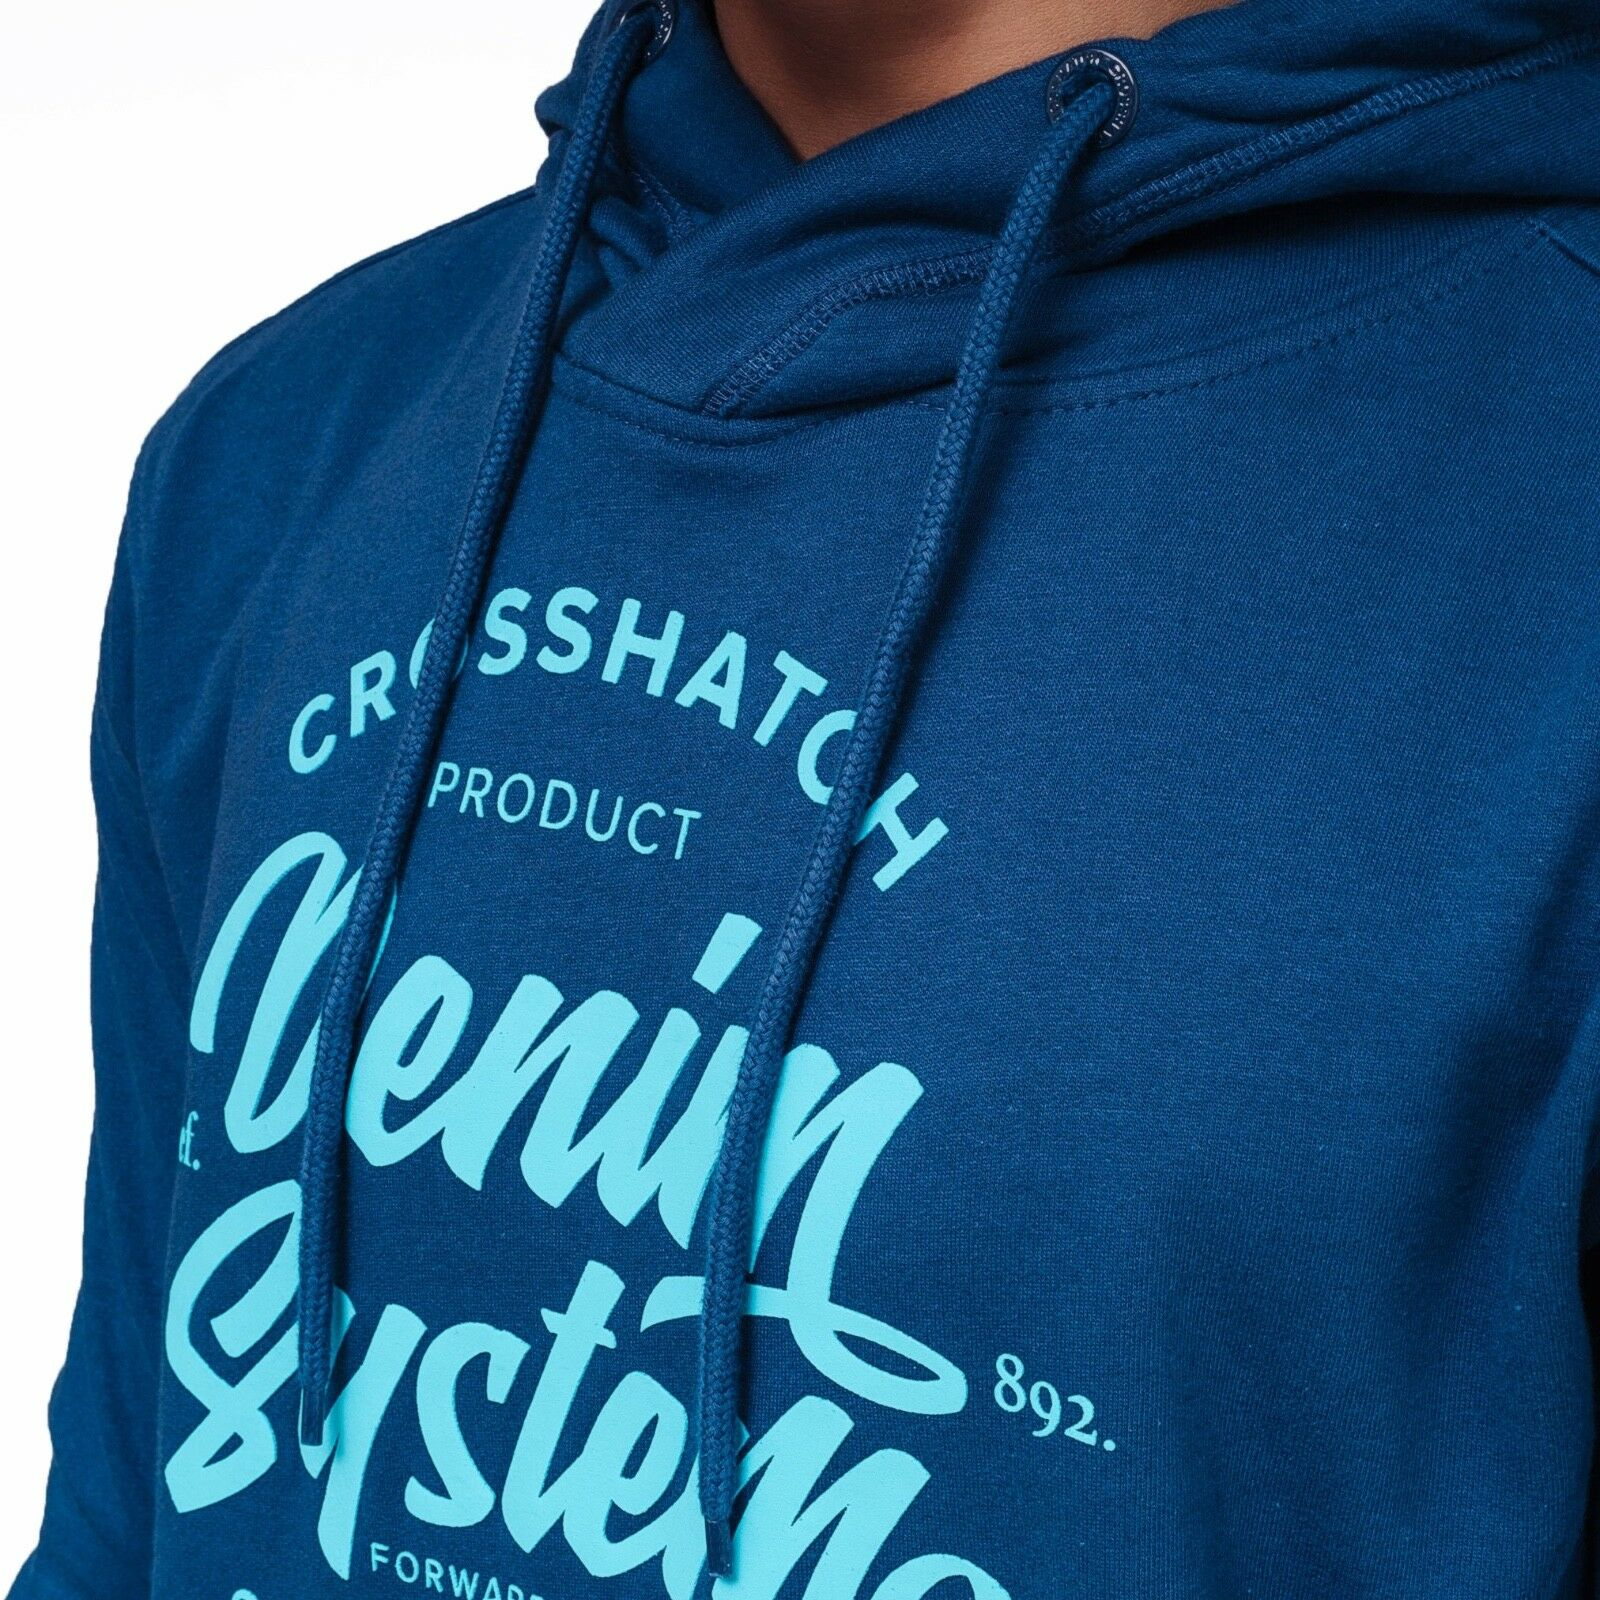 Crosshatch Homme Logo Sweat à Capuche Polaire À Sweat À Polaire Capuche Gris Bleu Marine Neuf Top 692e14